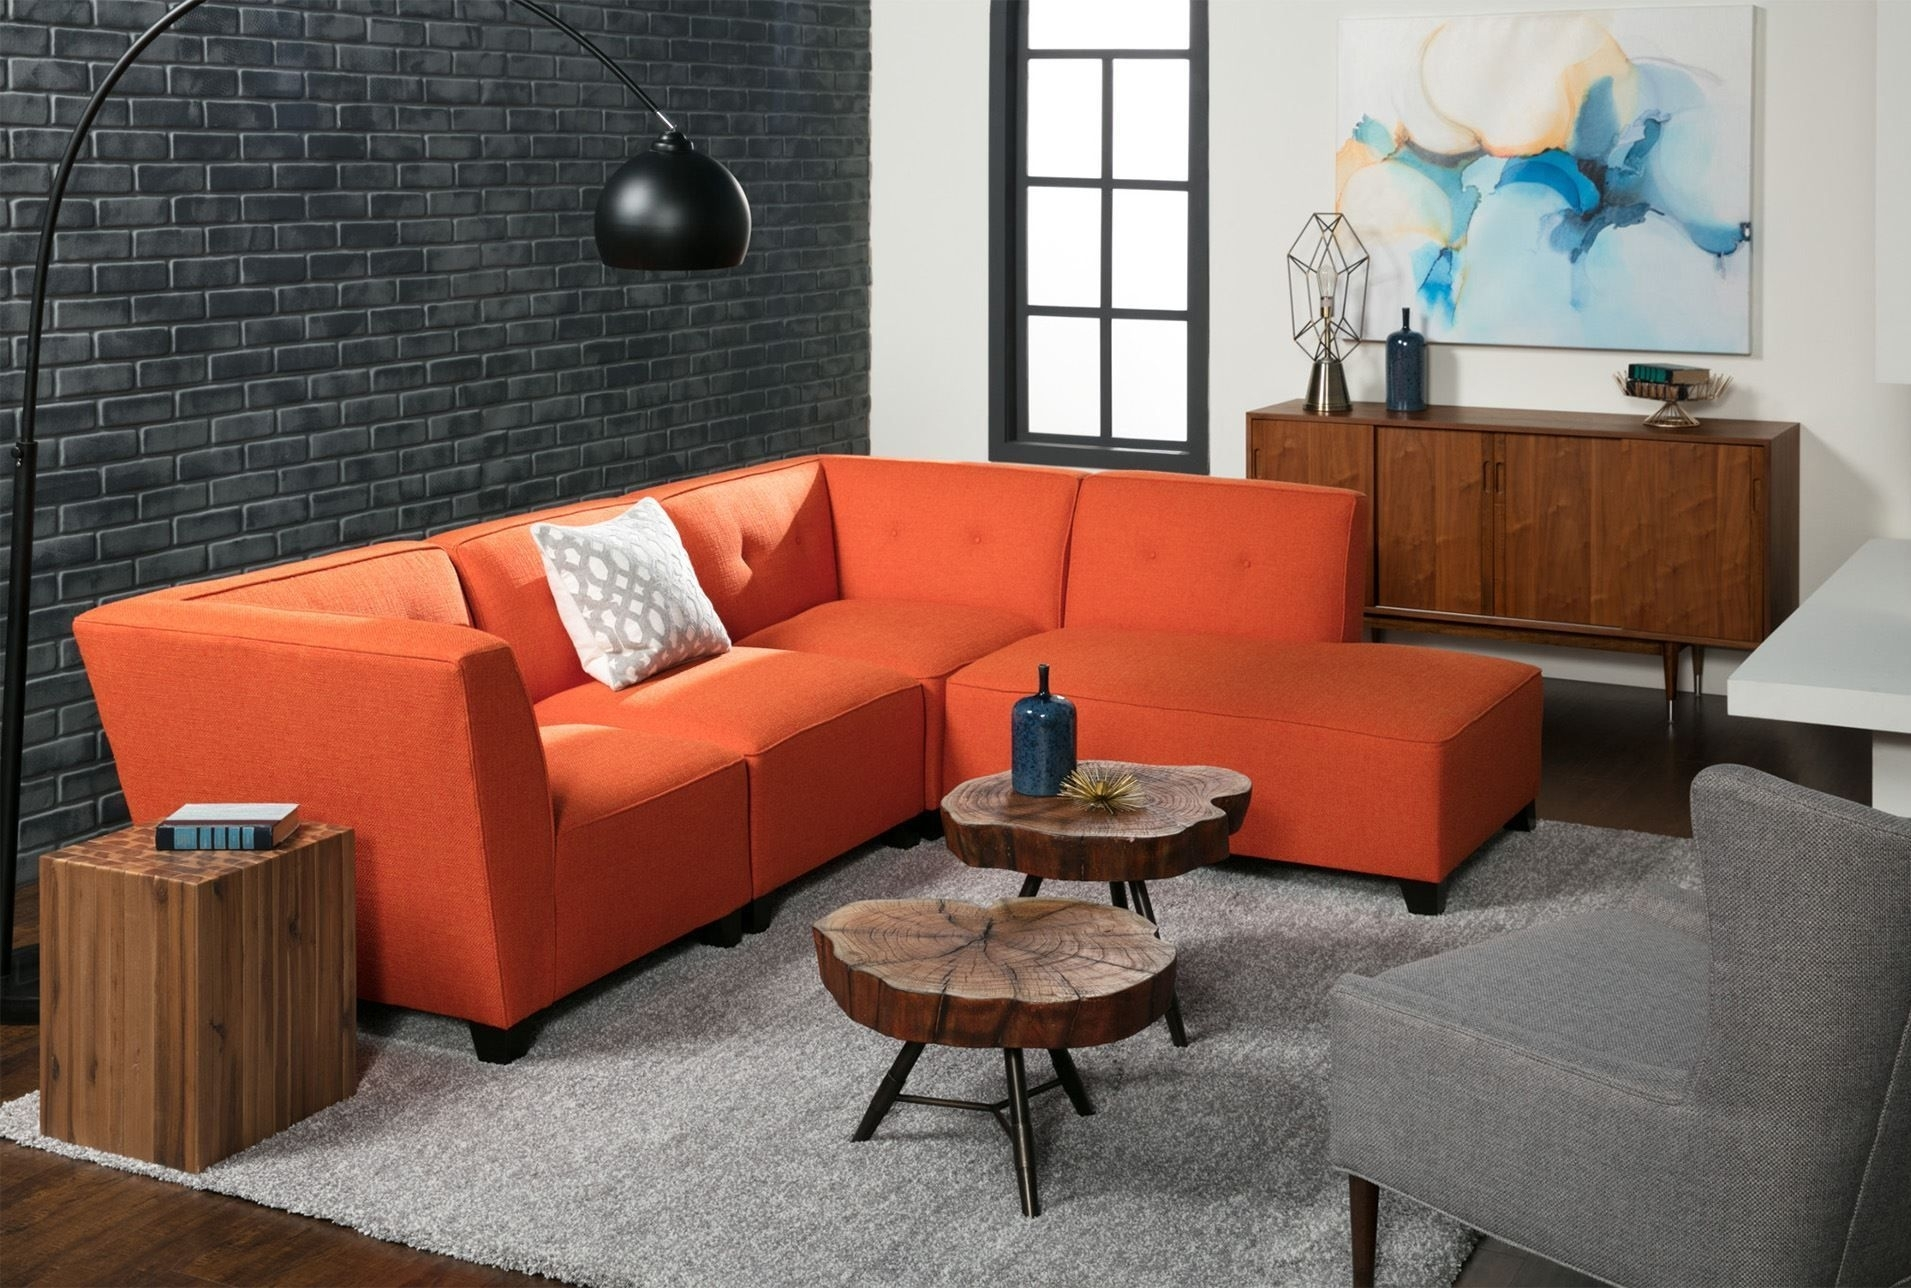 Benton 4 Piece Sectional | Remodel | Pinterest | Sweet House with regard to Benton 4 Piece Sectionals (Image 4 of 30)